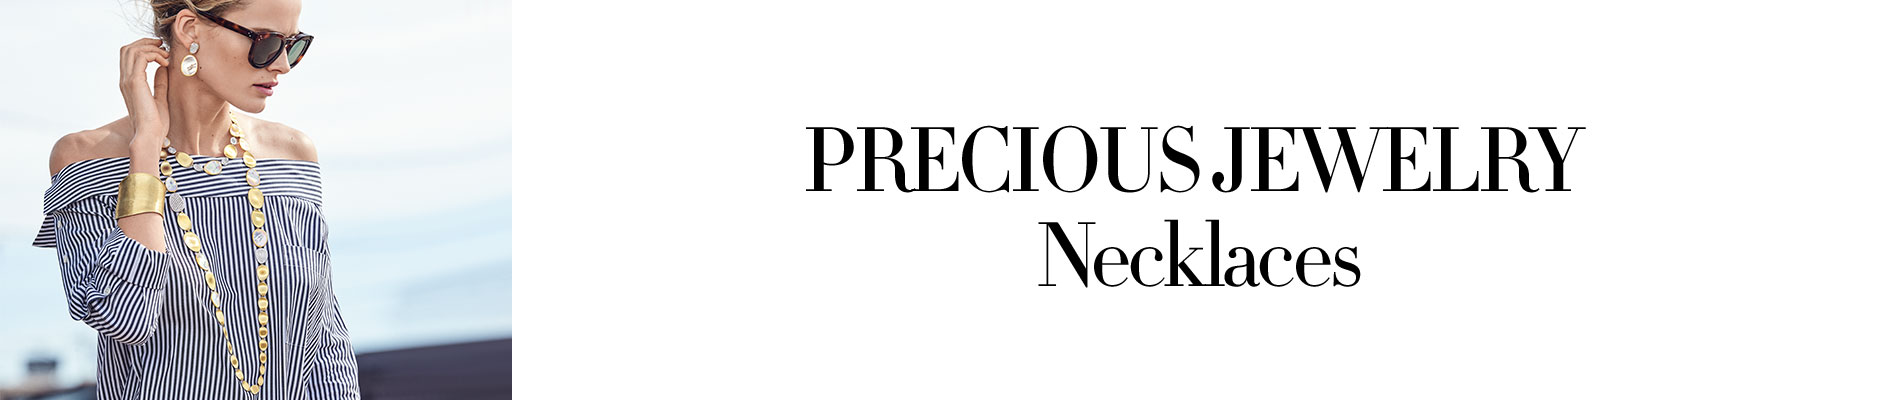 Precious Jewelry - Necklaces